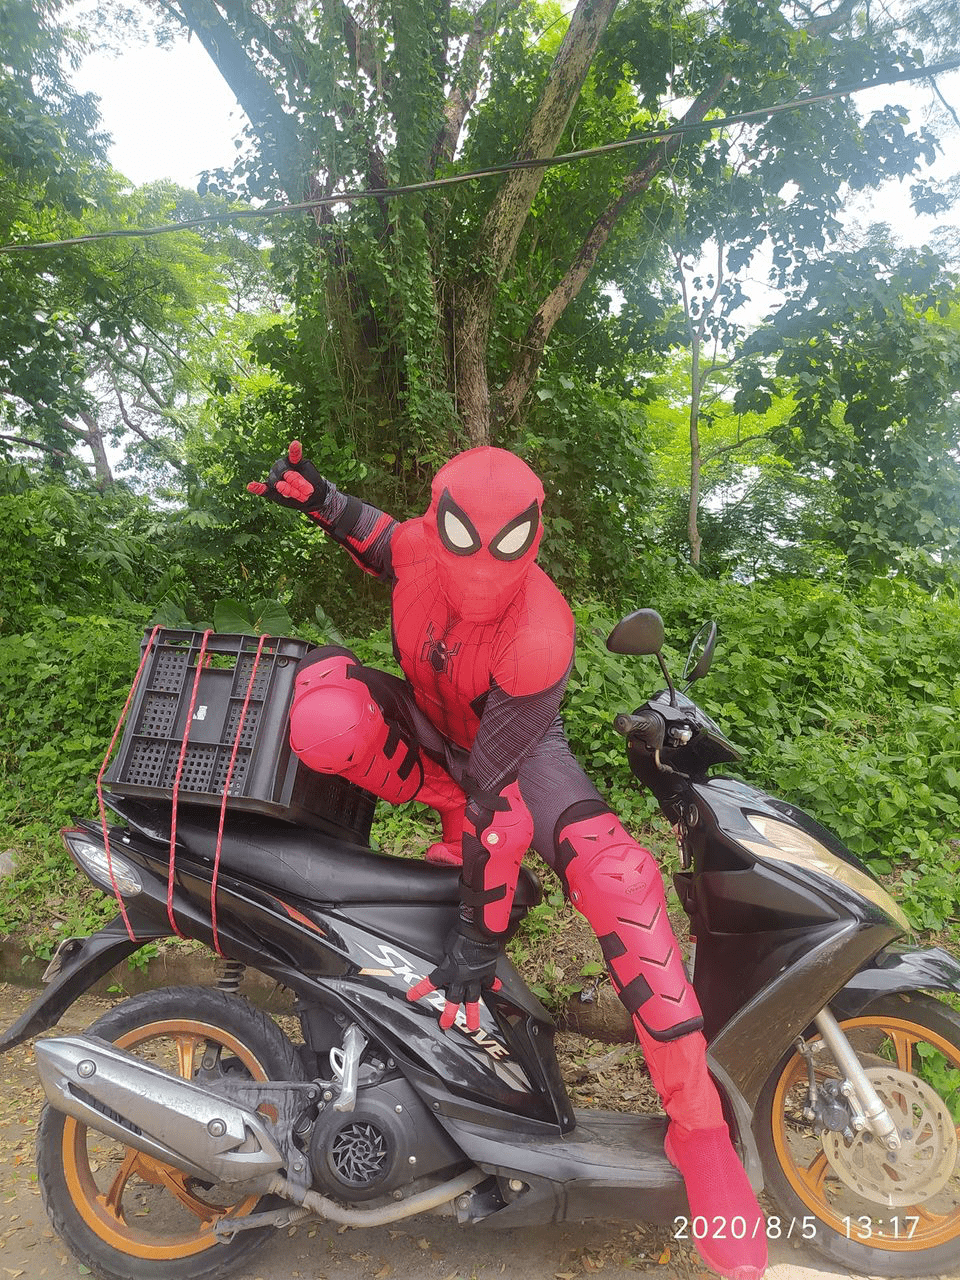 spiderman on delivery bike